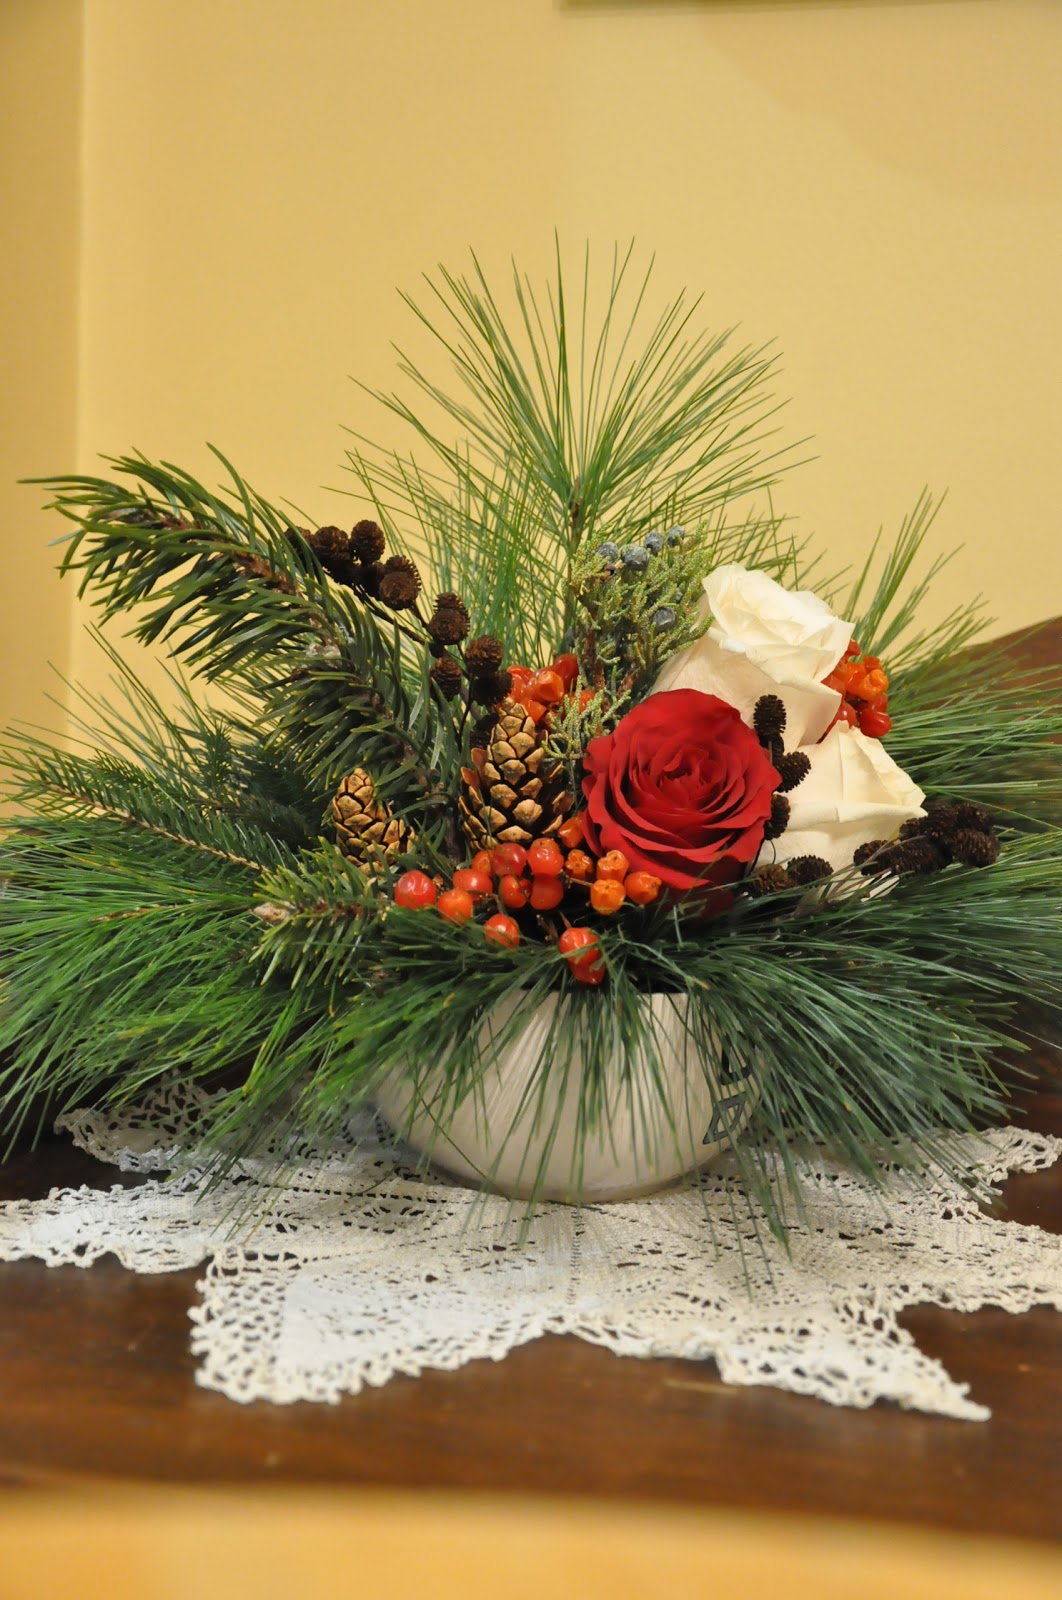 reub-envision: Florals at Christmas (Preview)